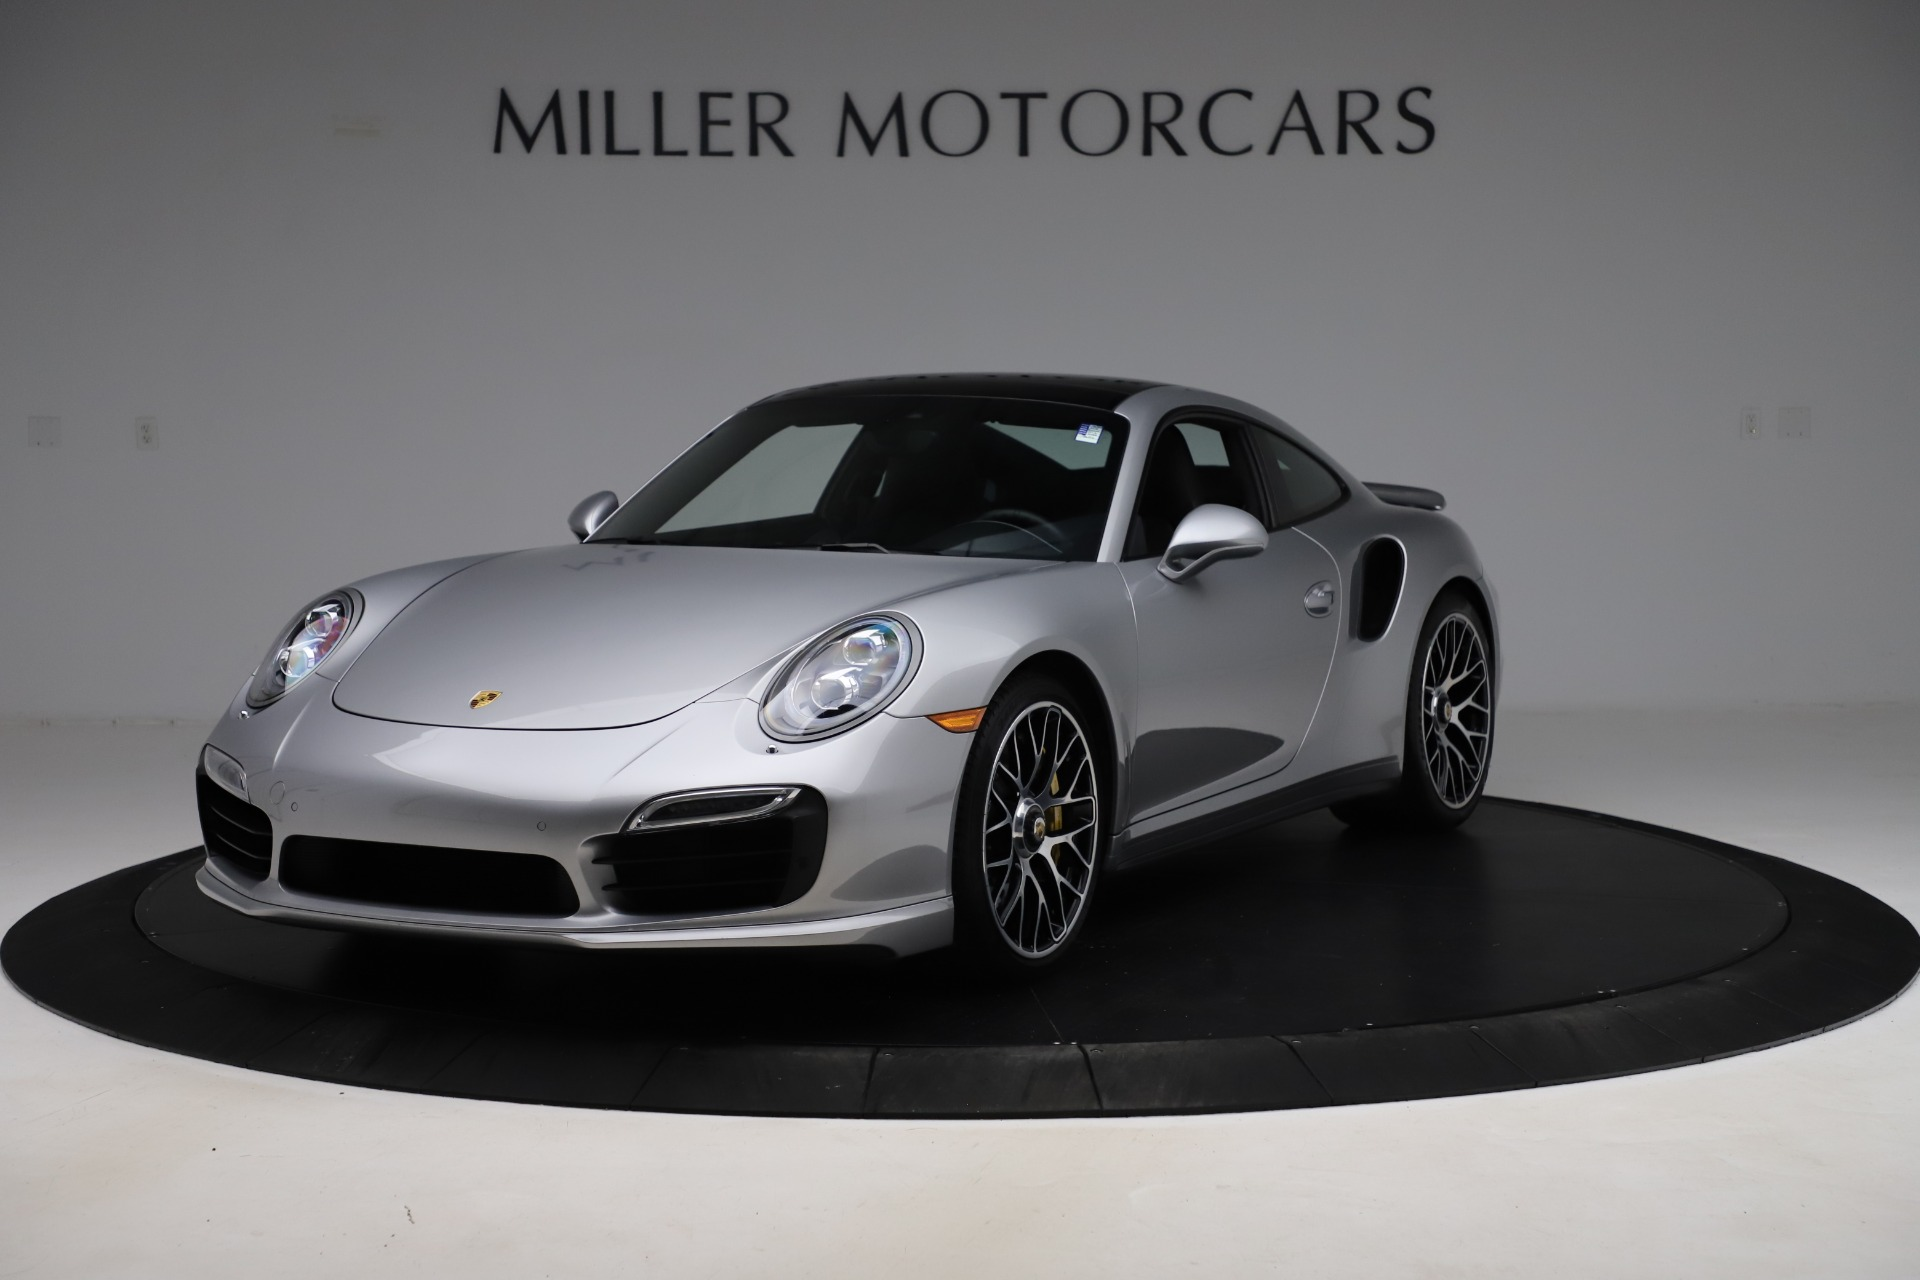 Used 2015 Porsche 911 Turbo S for sale $121,900 at Pagani of Greenwich in Greenwich CT 06830 1